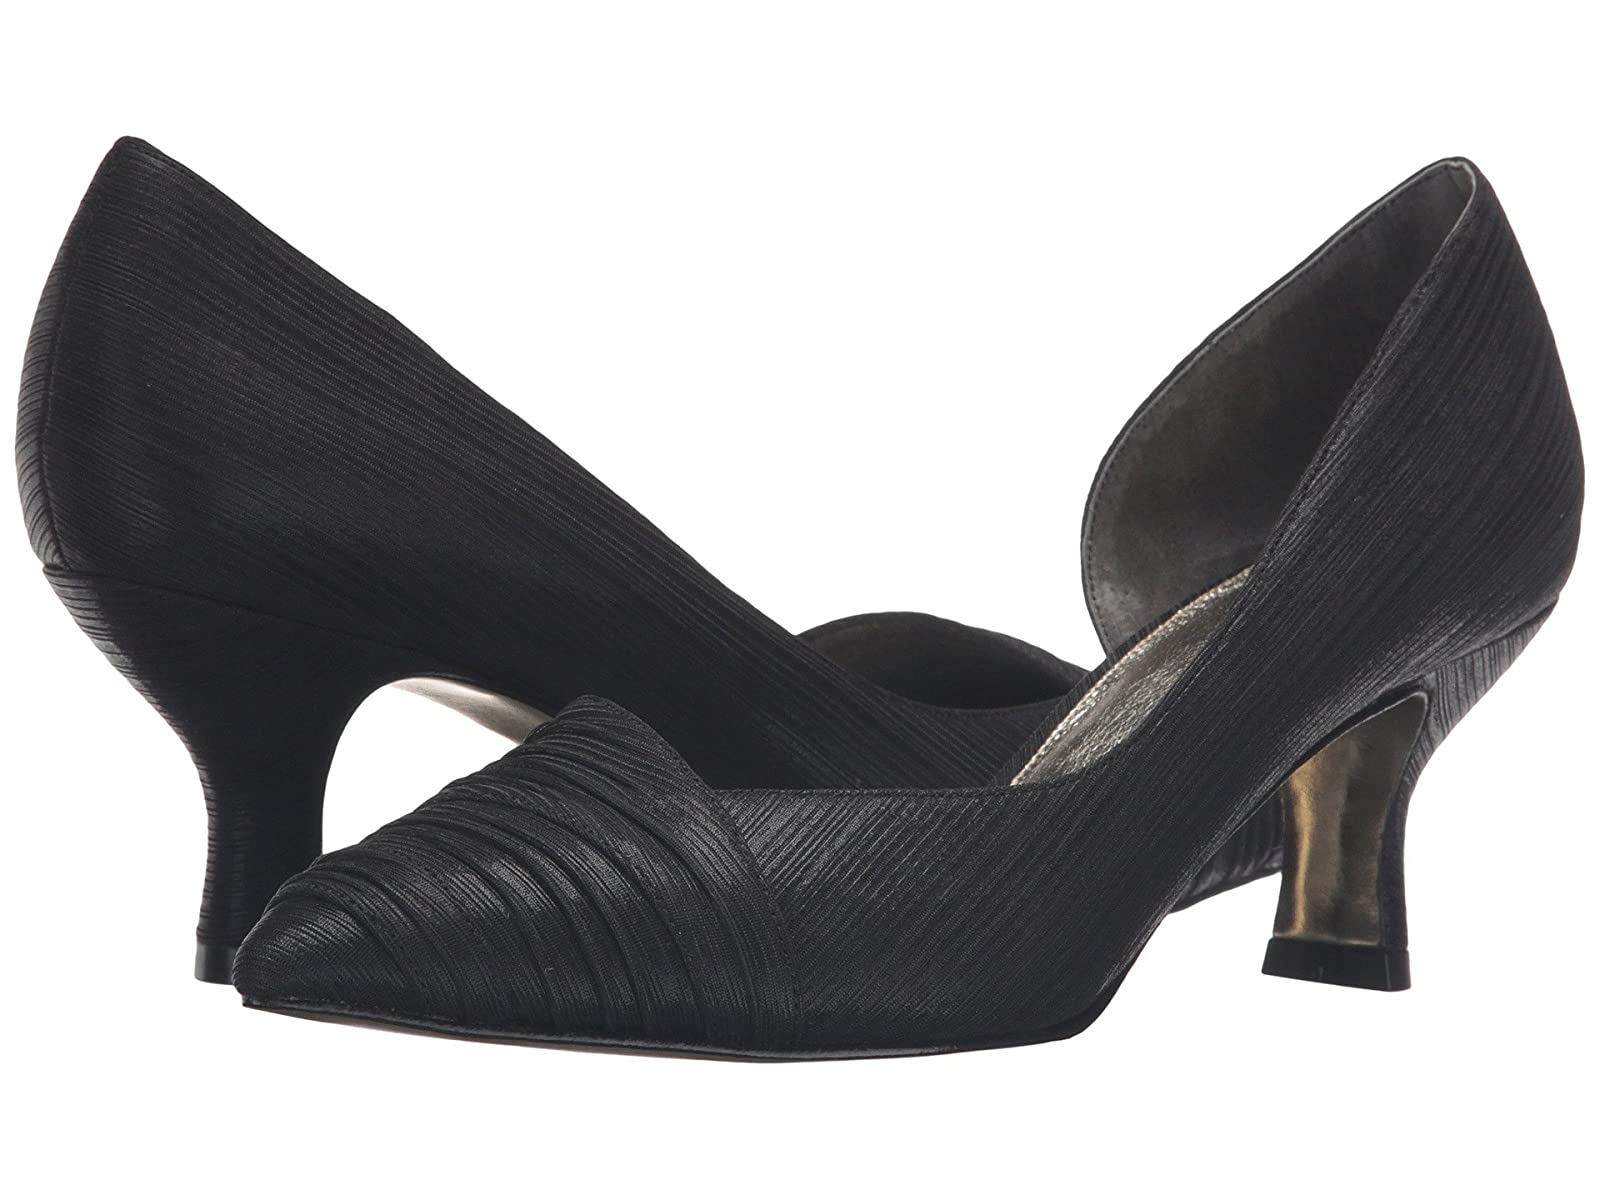 Adrianna Papell HarrietCheap and distinctive eye-catching shoes